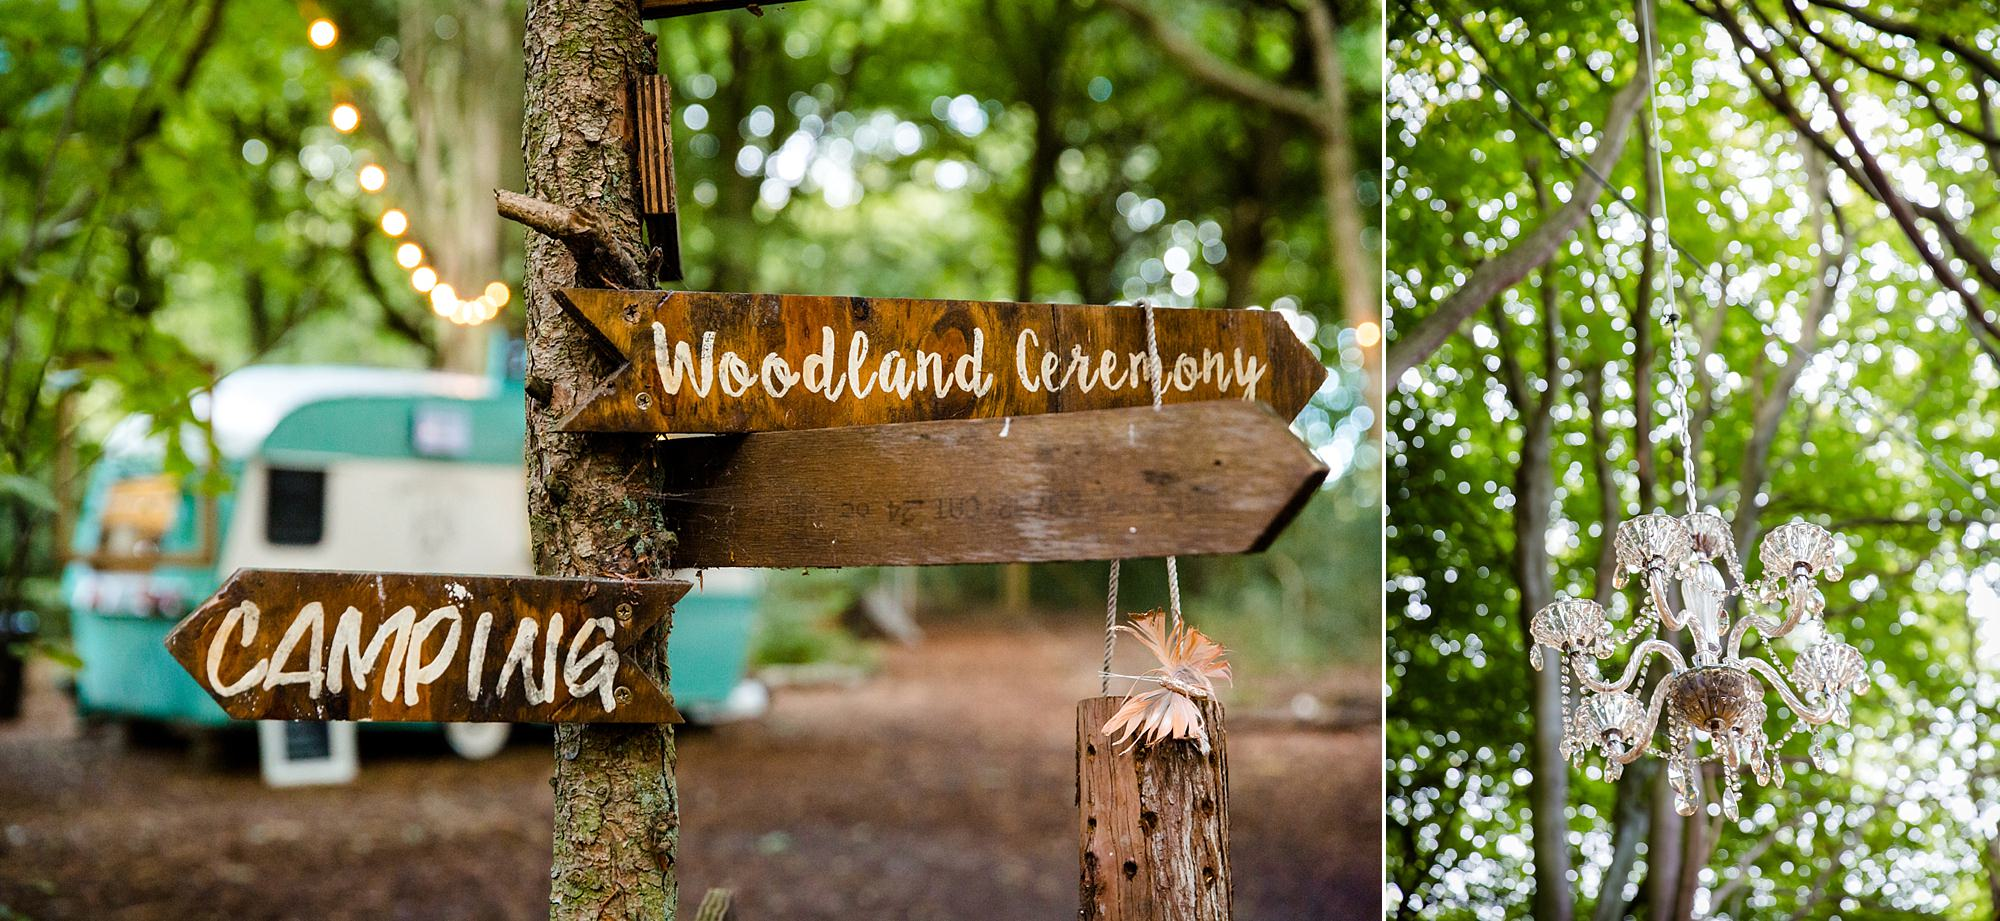 Woodland Weddings Tring signposts